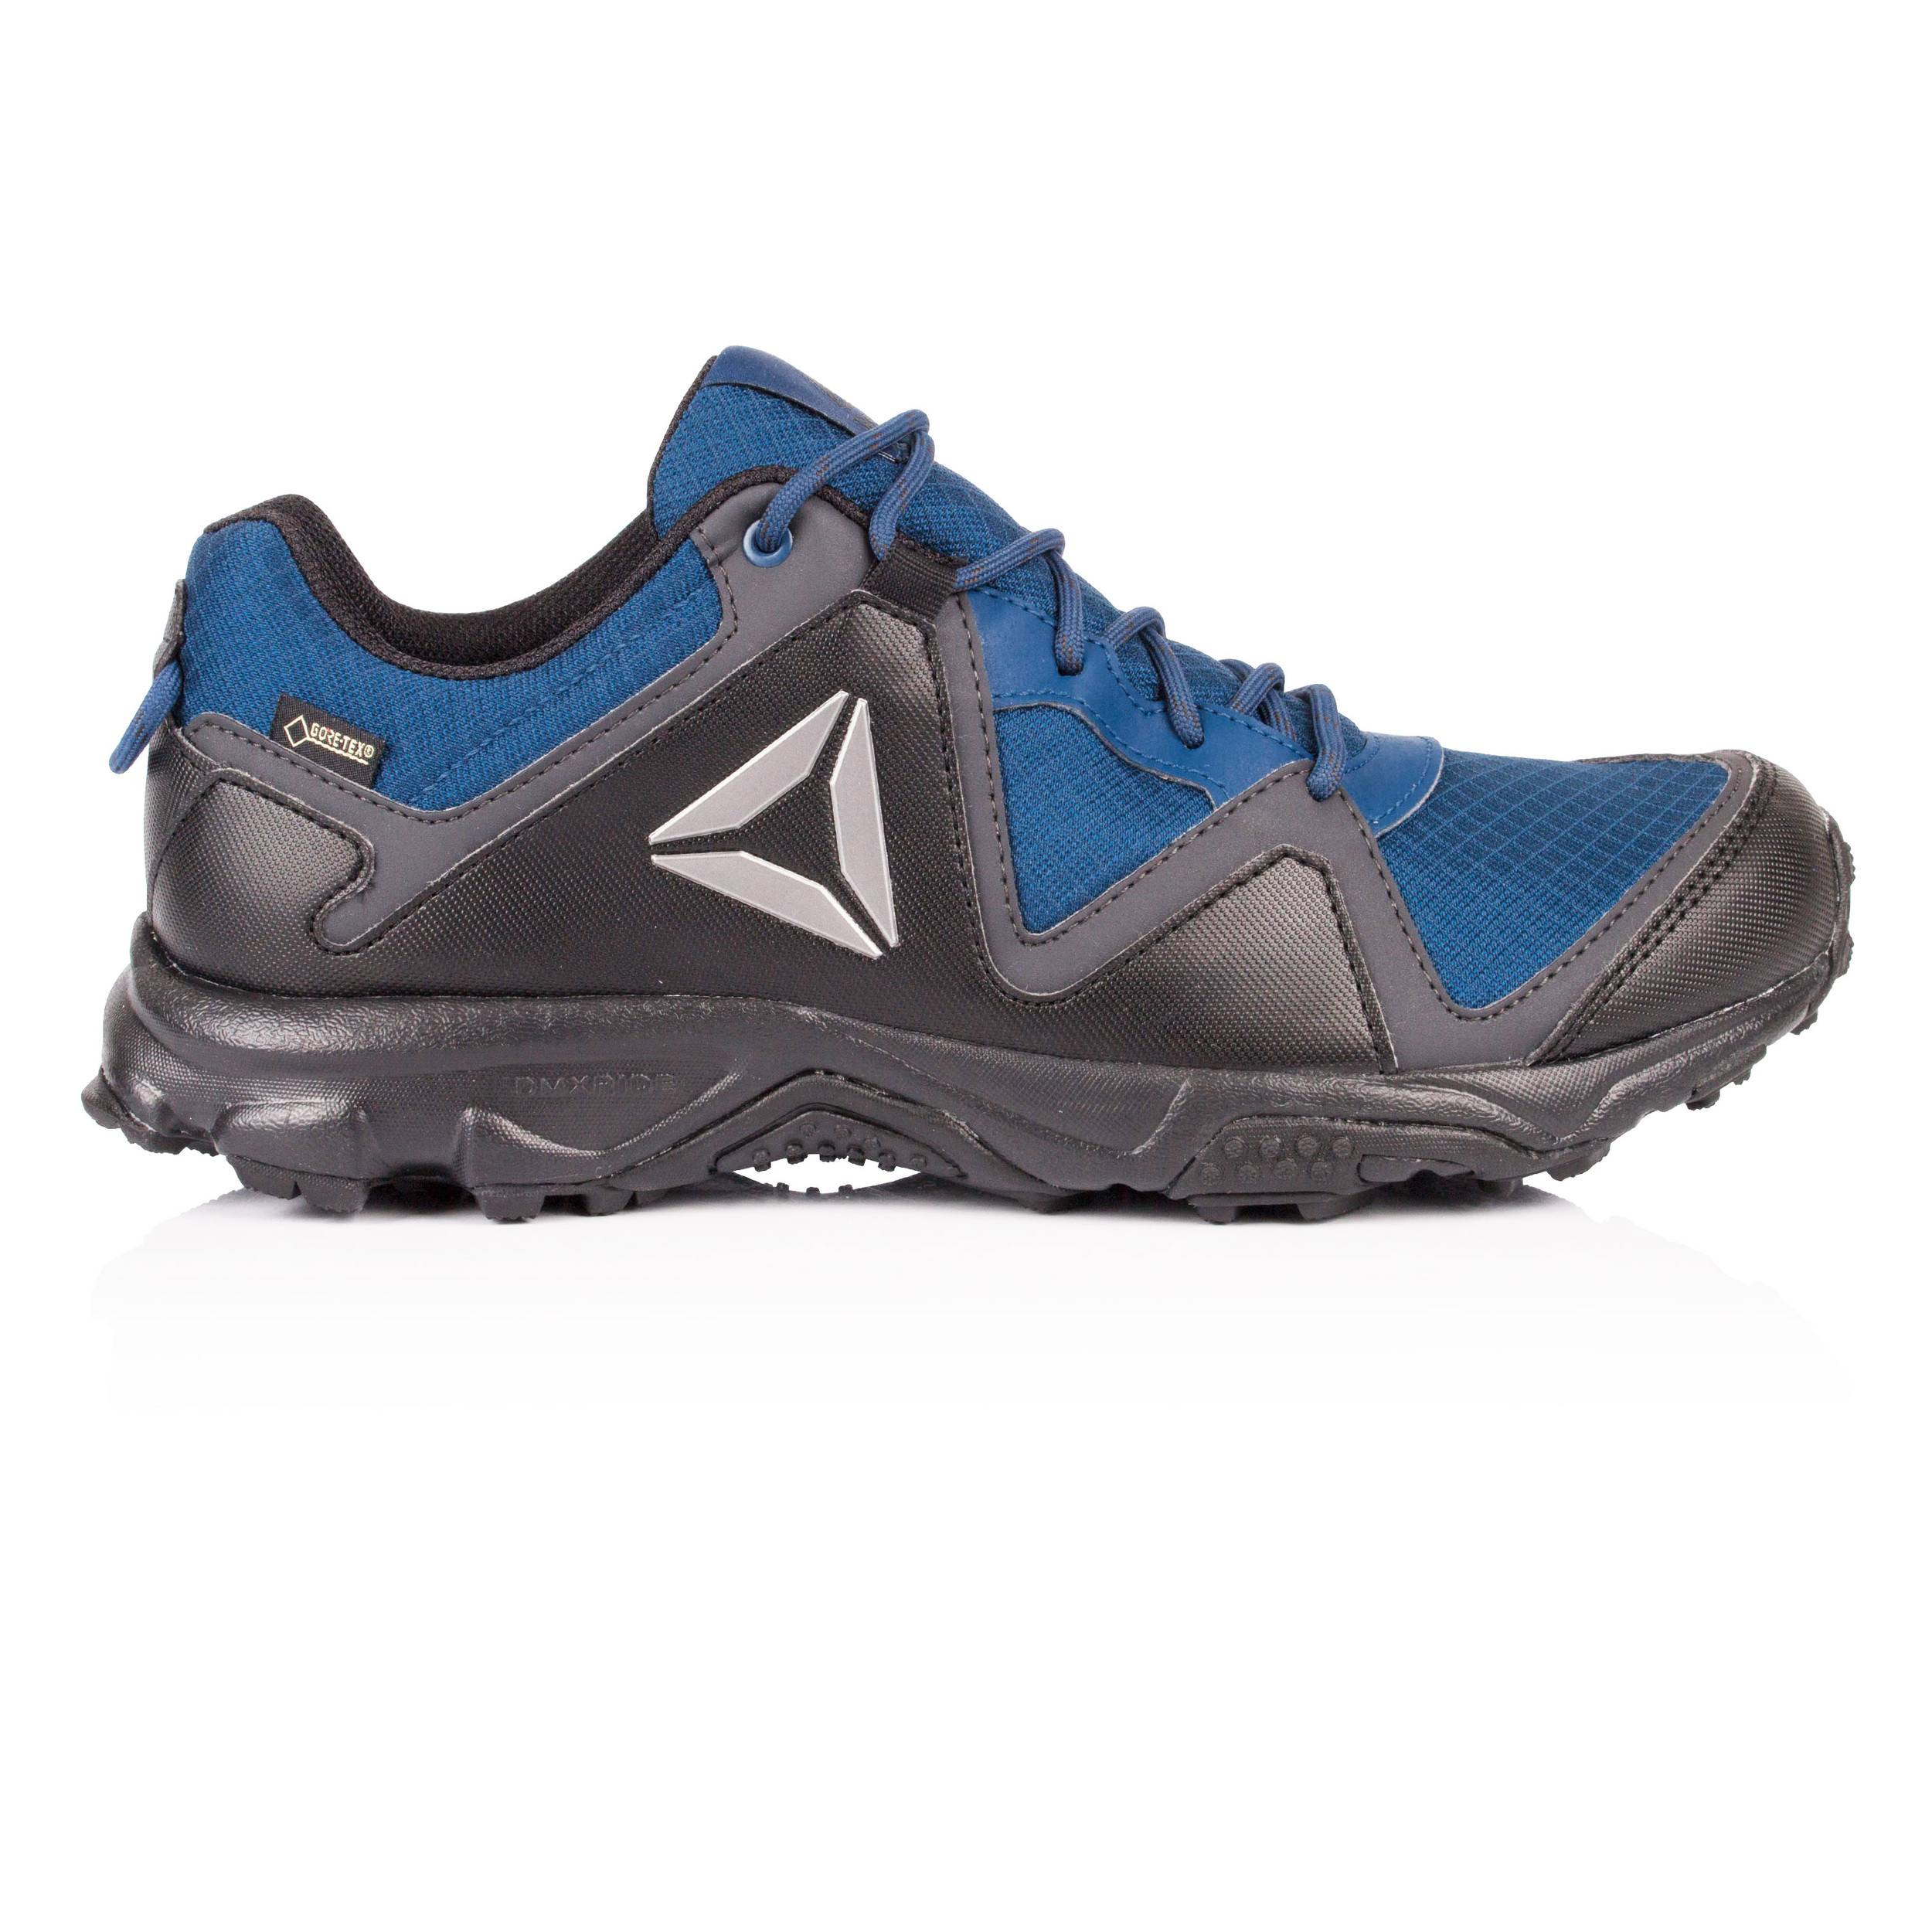 815029bcc57e Details about Reebok Mens Franconia Ridge 3.0 Gore-Tex Walking Shoes Black  Navy Blue Trainers